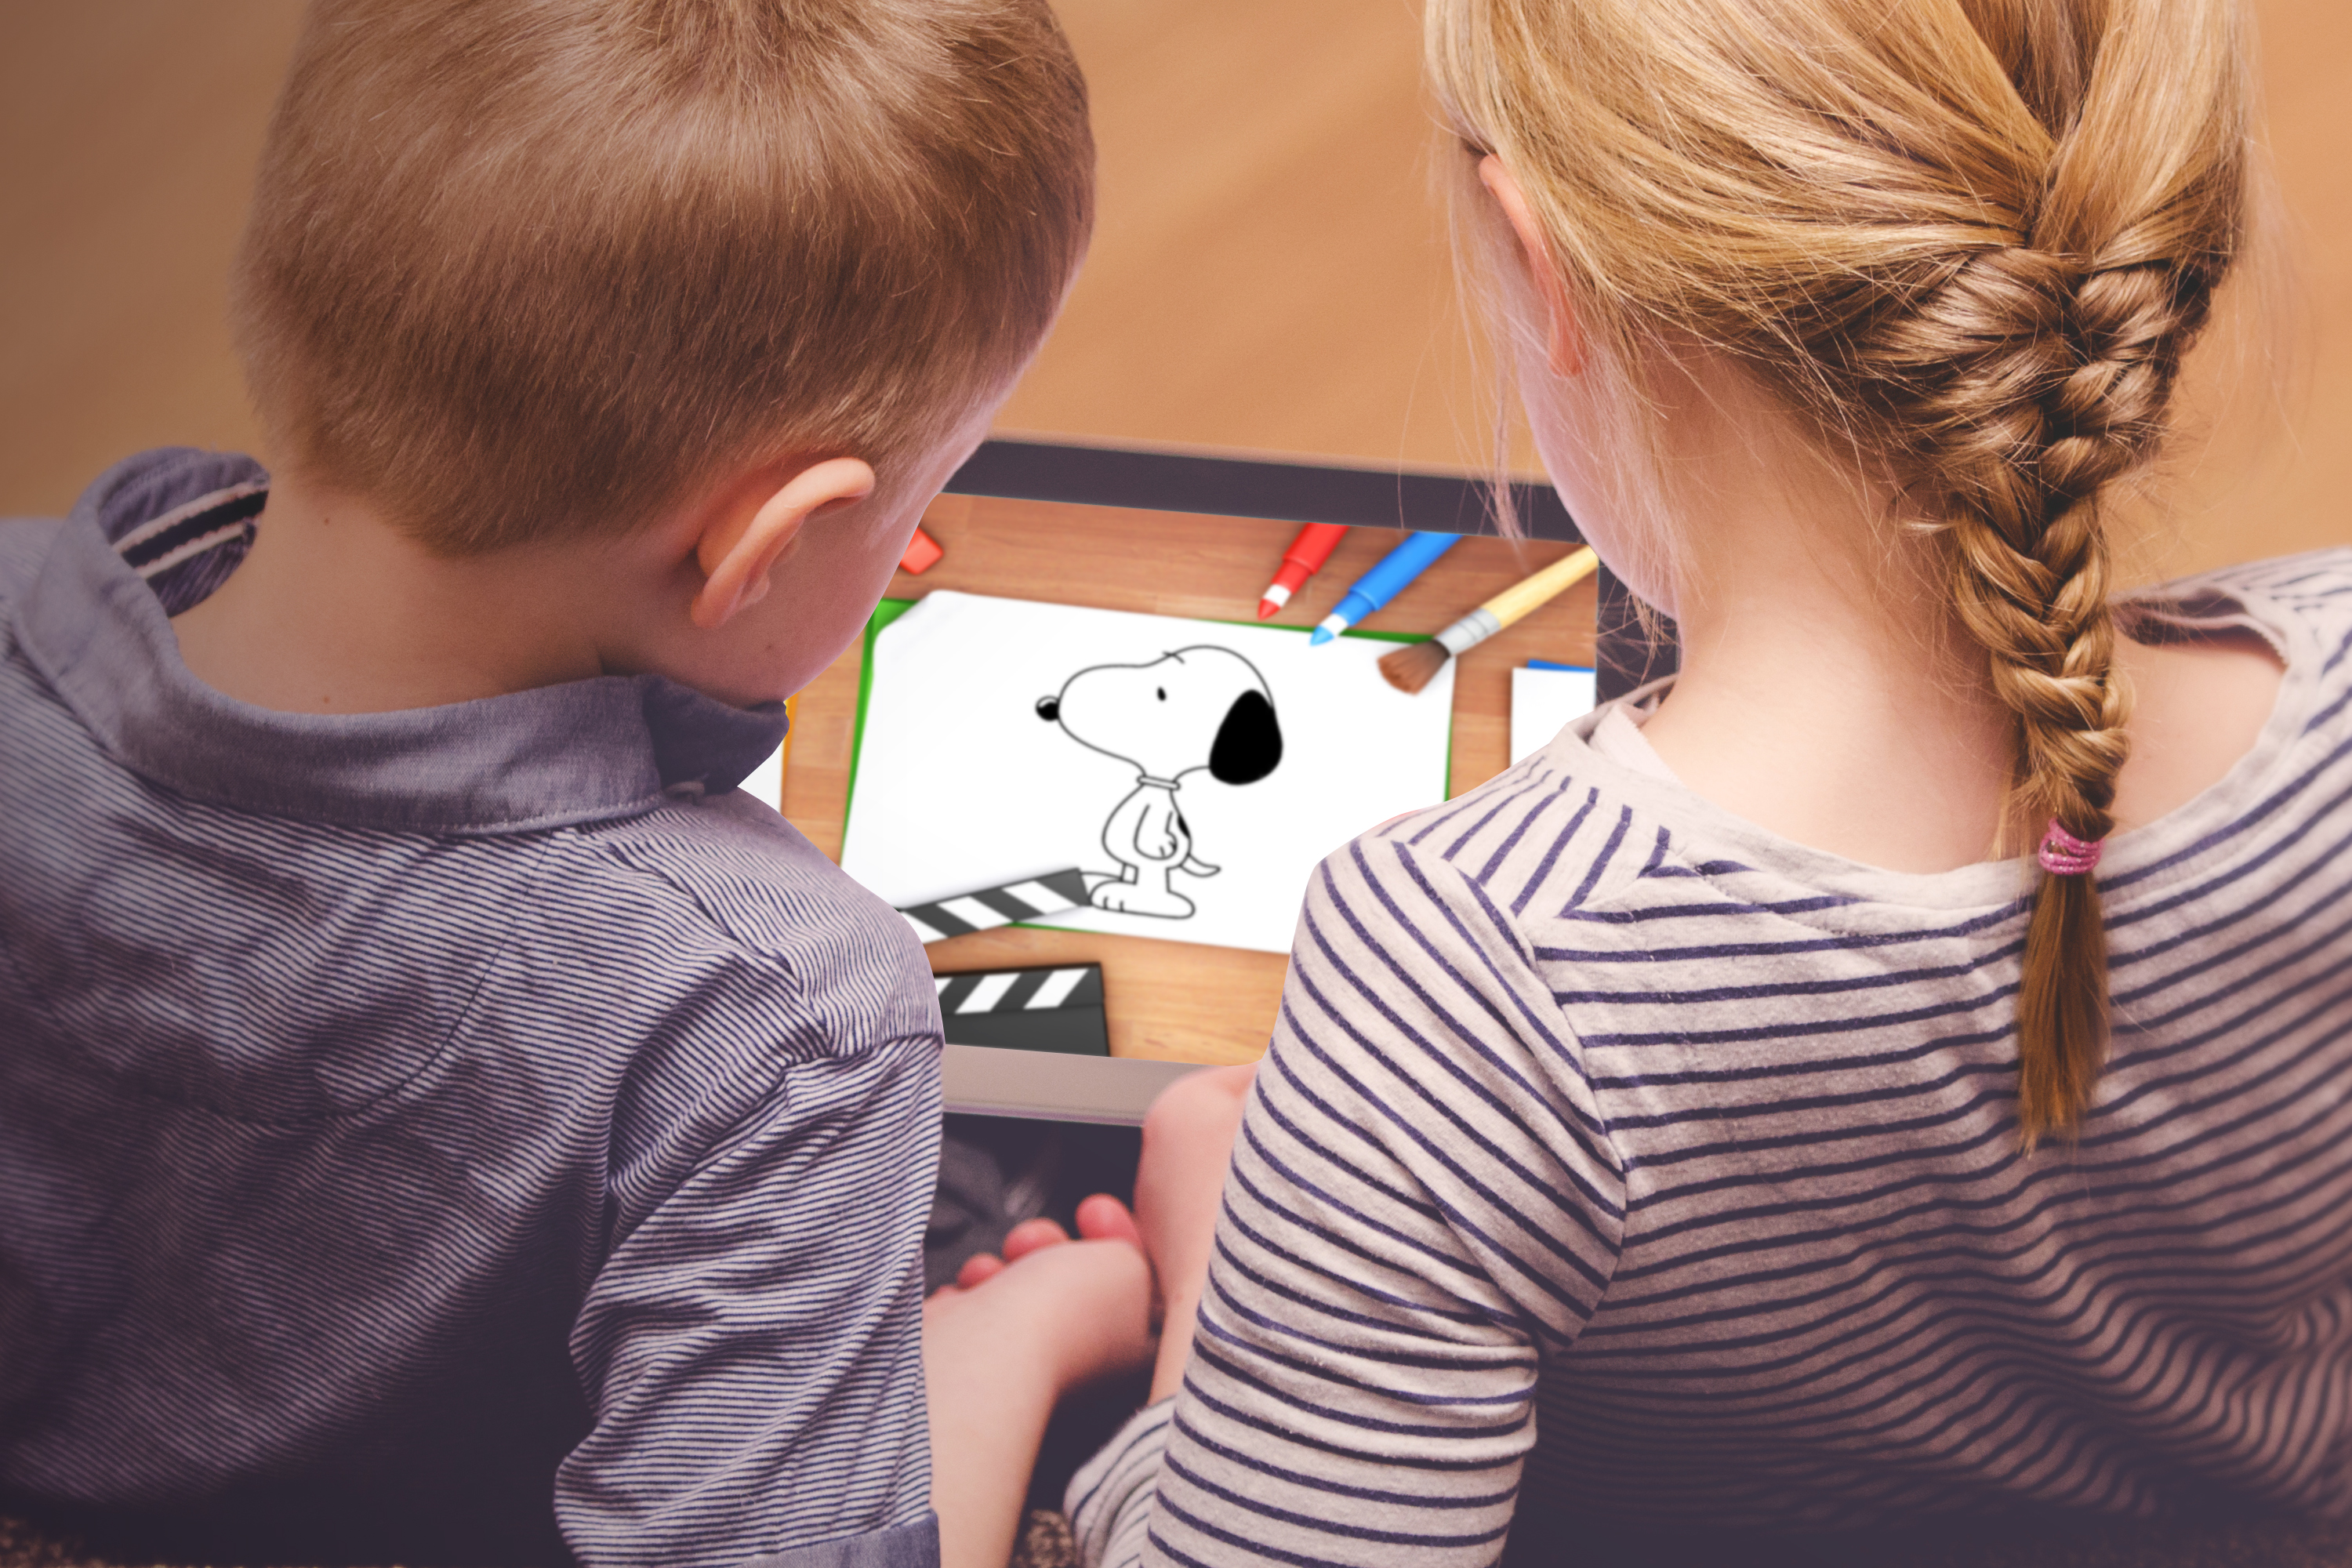 Siblings Playing on Tablet PC